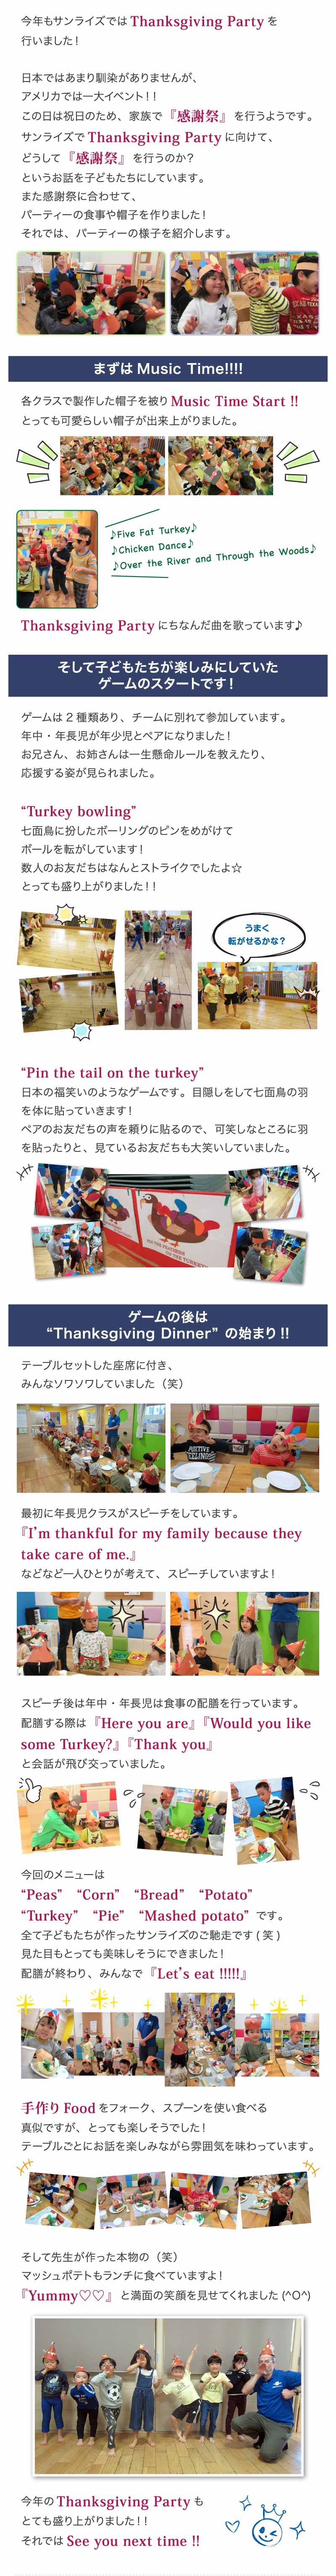 Thankgiving Party(サンクスギビング)